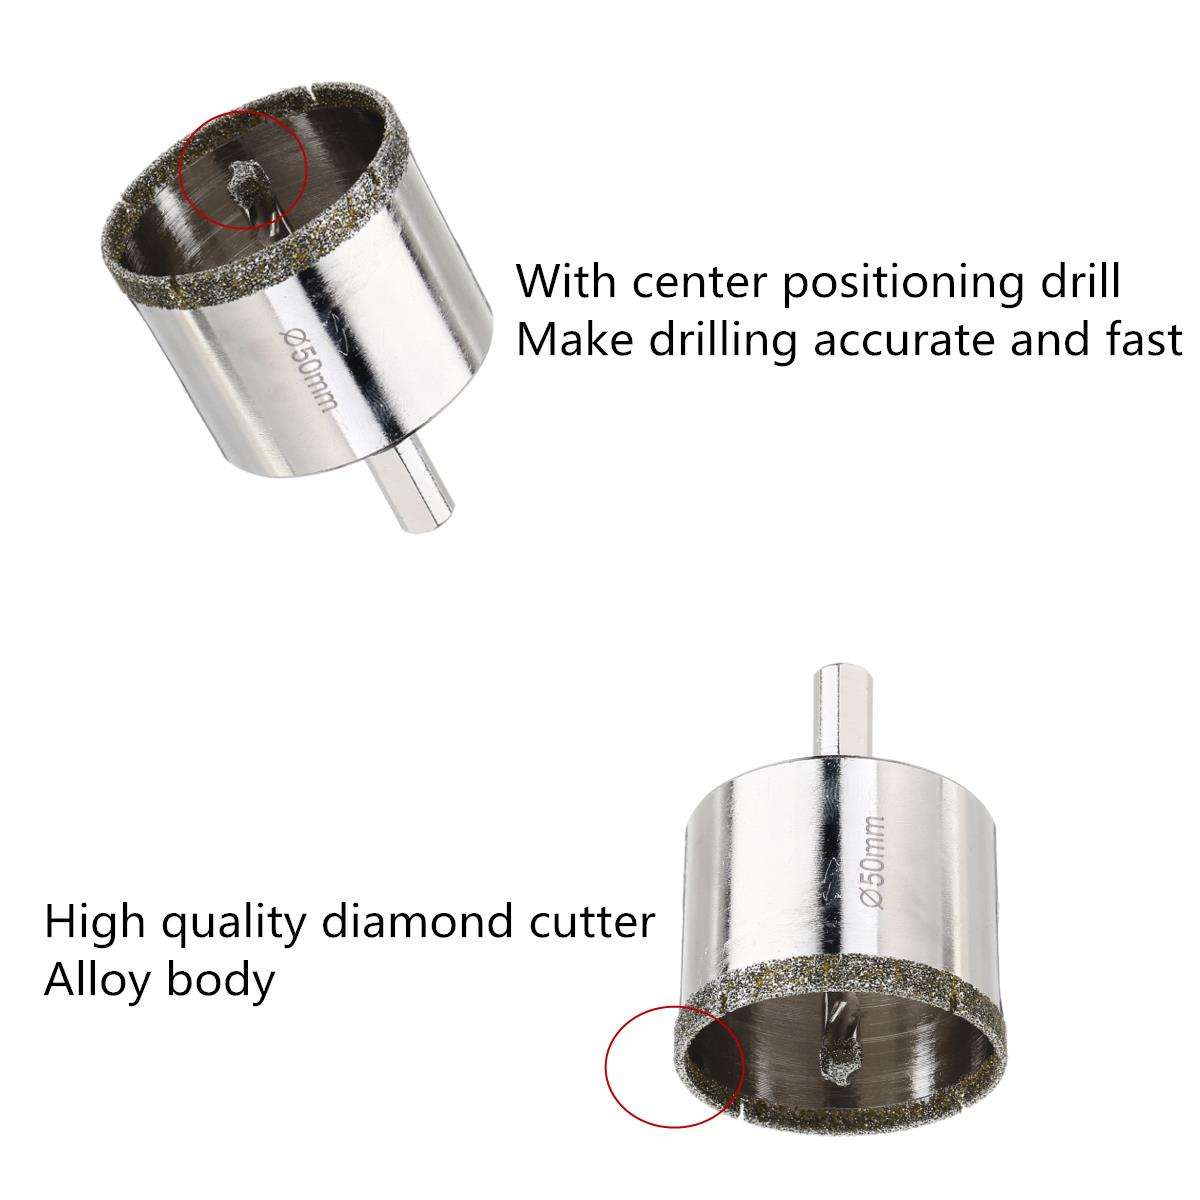 Drillpro 16-50mm Diamond Hole Saw Cutter with Center Drill Marble Ceramic Tile Glass Drill Bits